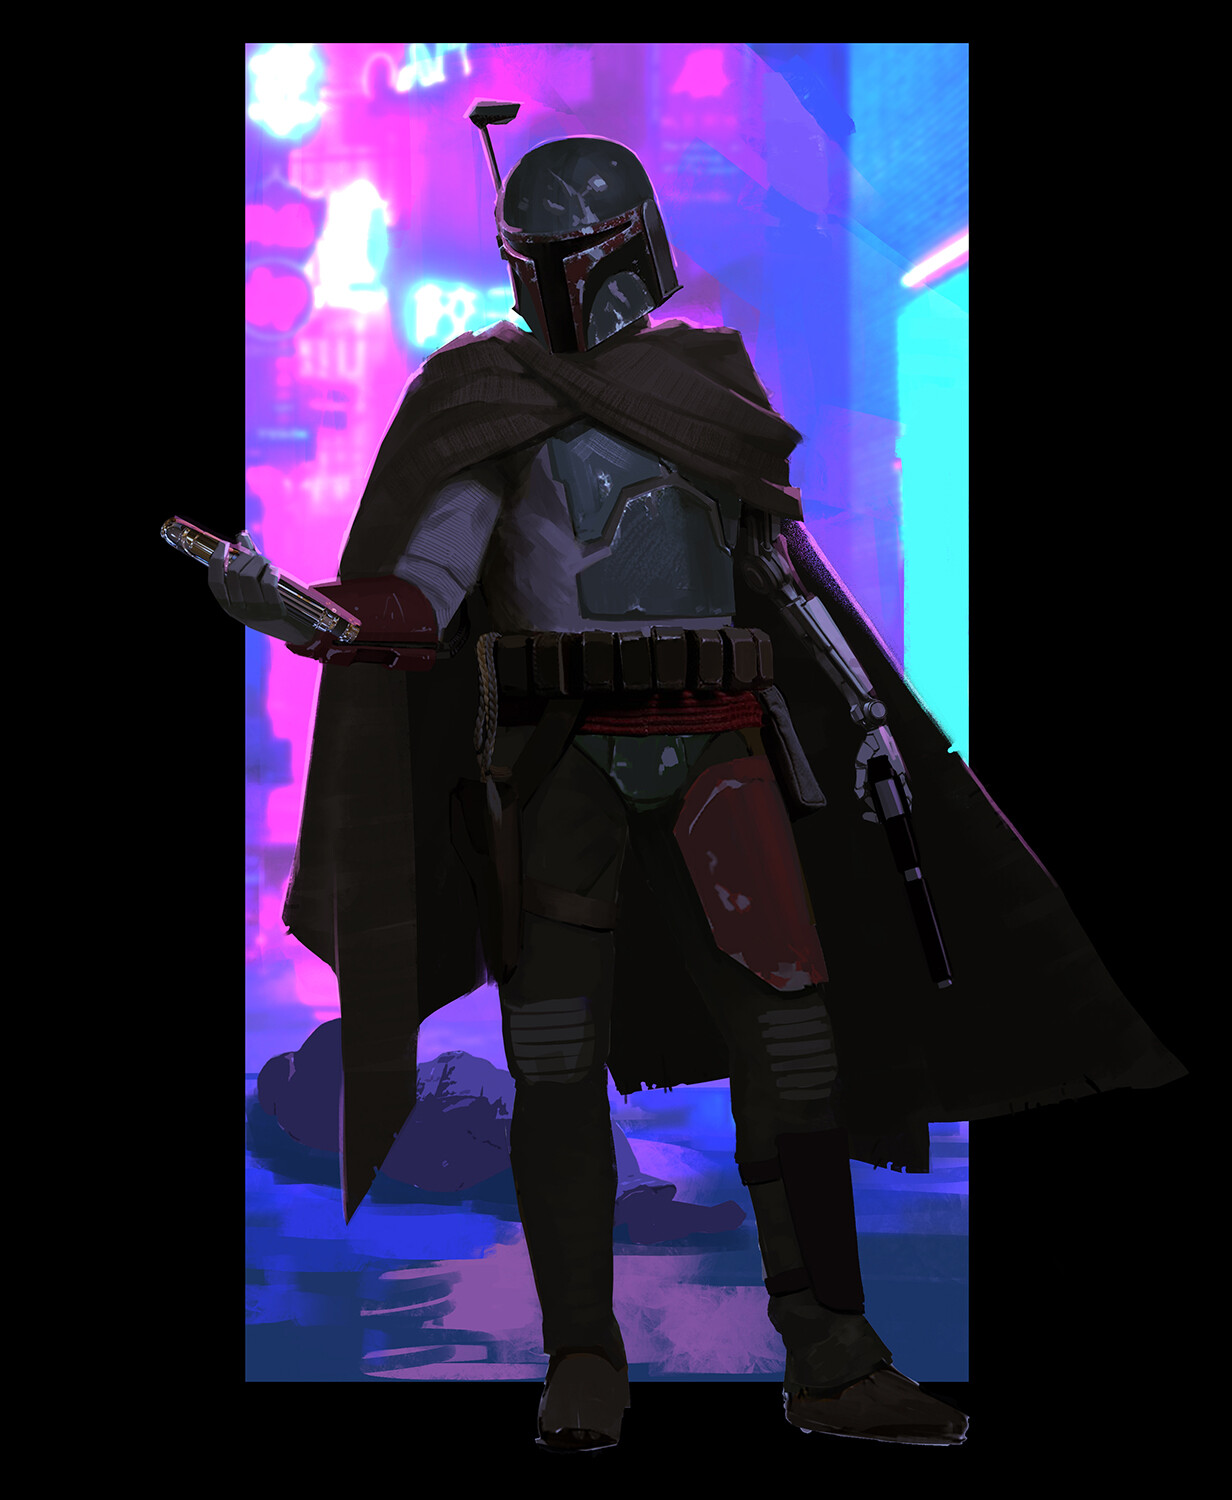 Part 3 - After going through the Coruscant underworld leaving a trail of bodies, Boba takes possession of Mace Windu's lightsaber.